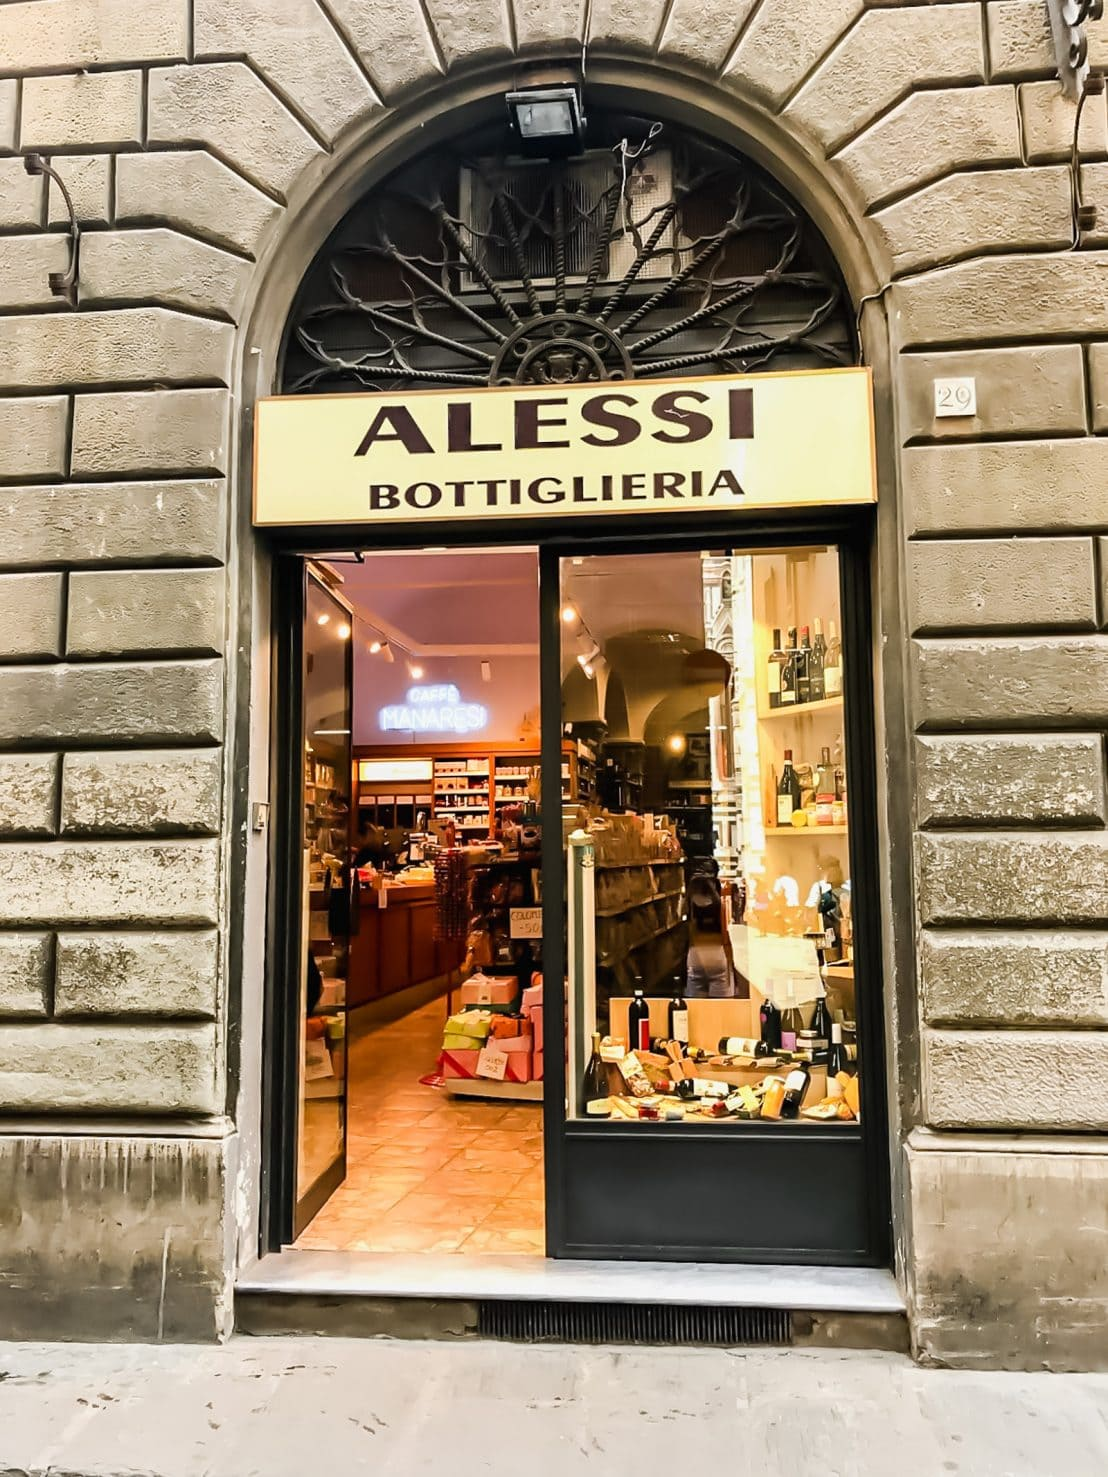 A shot of the store opening for enoteca Alessi in Florence, Italy.